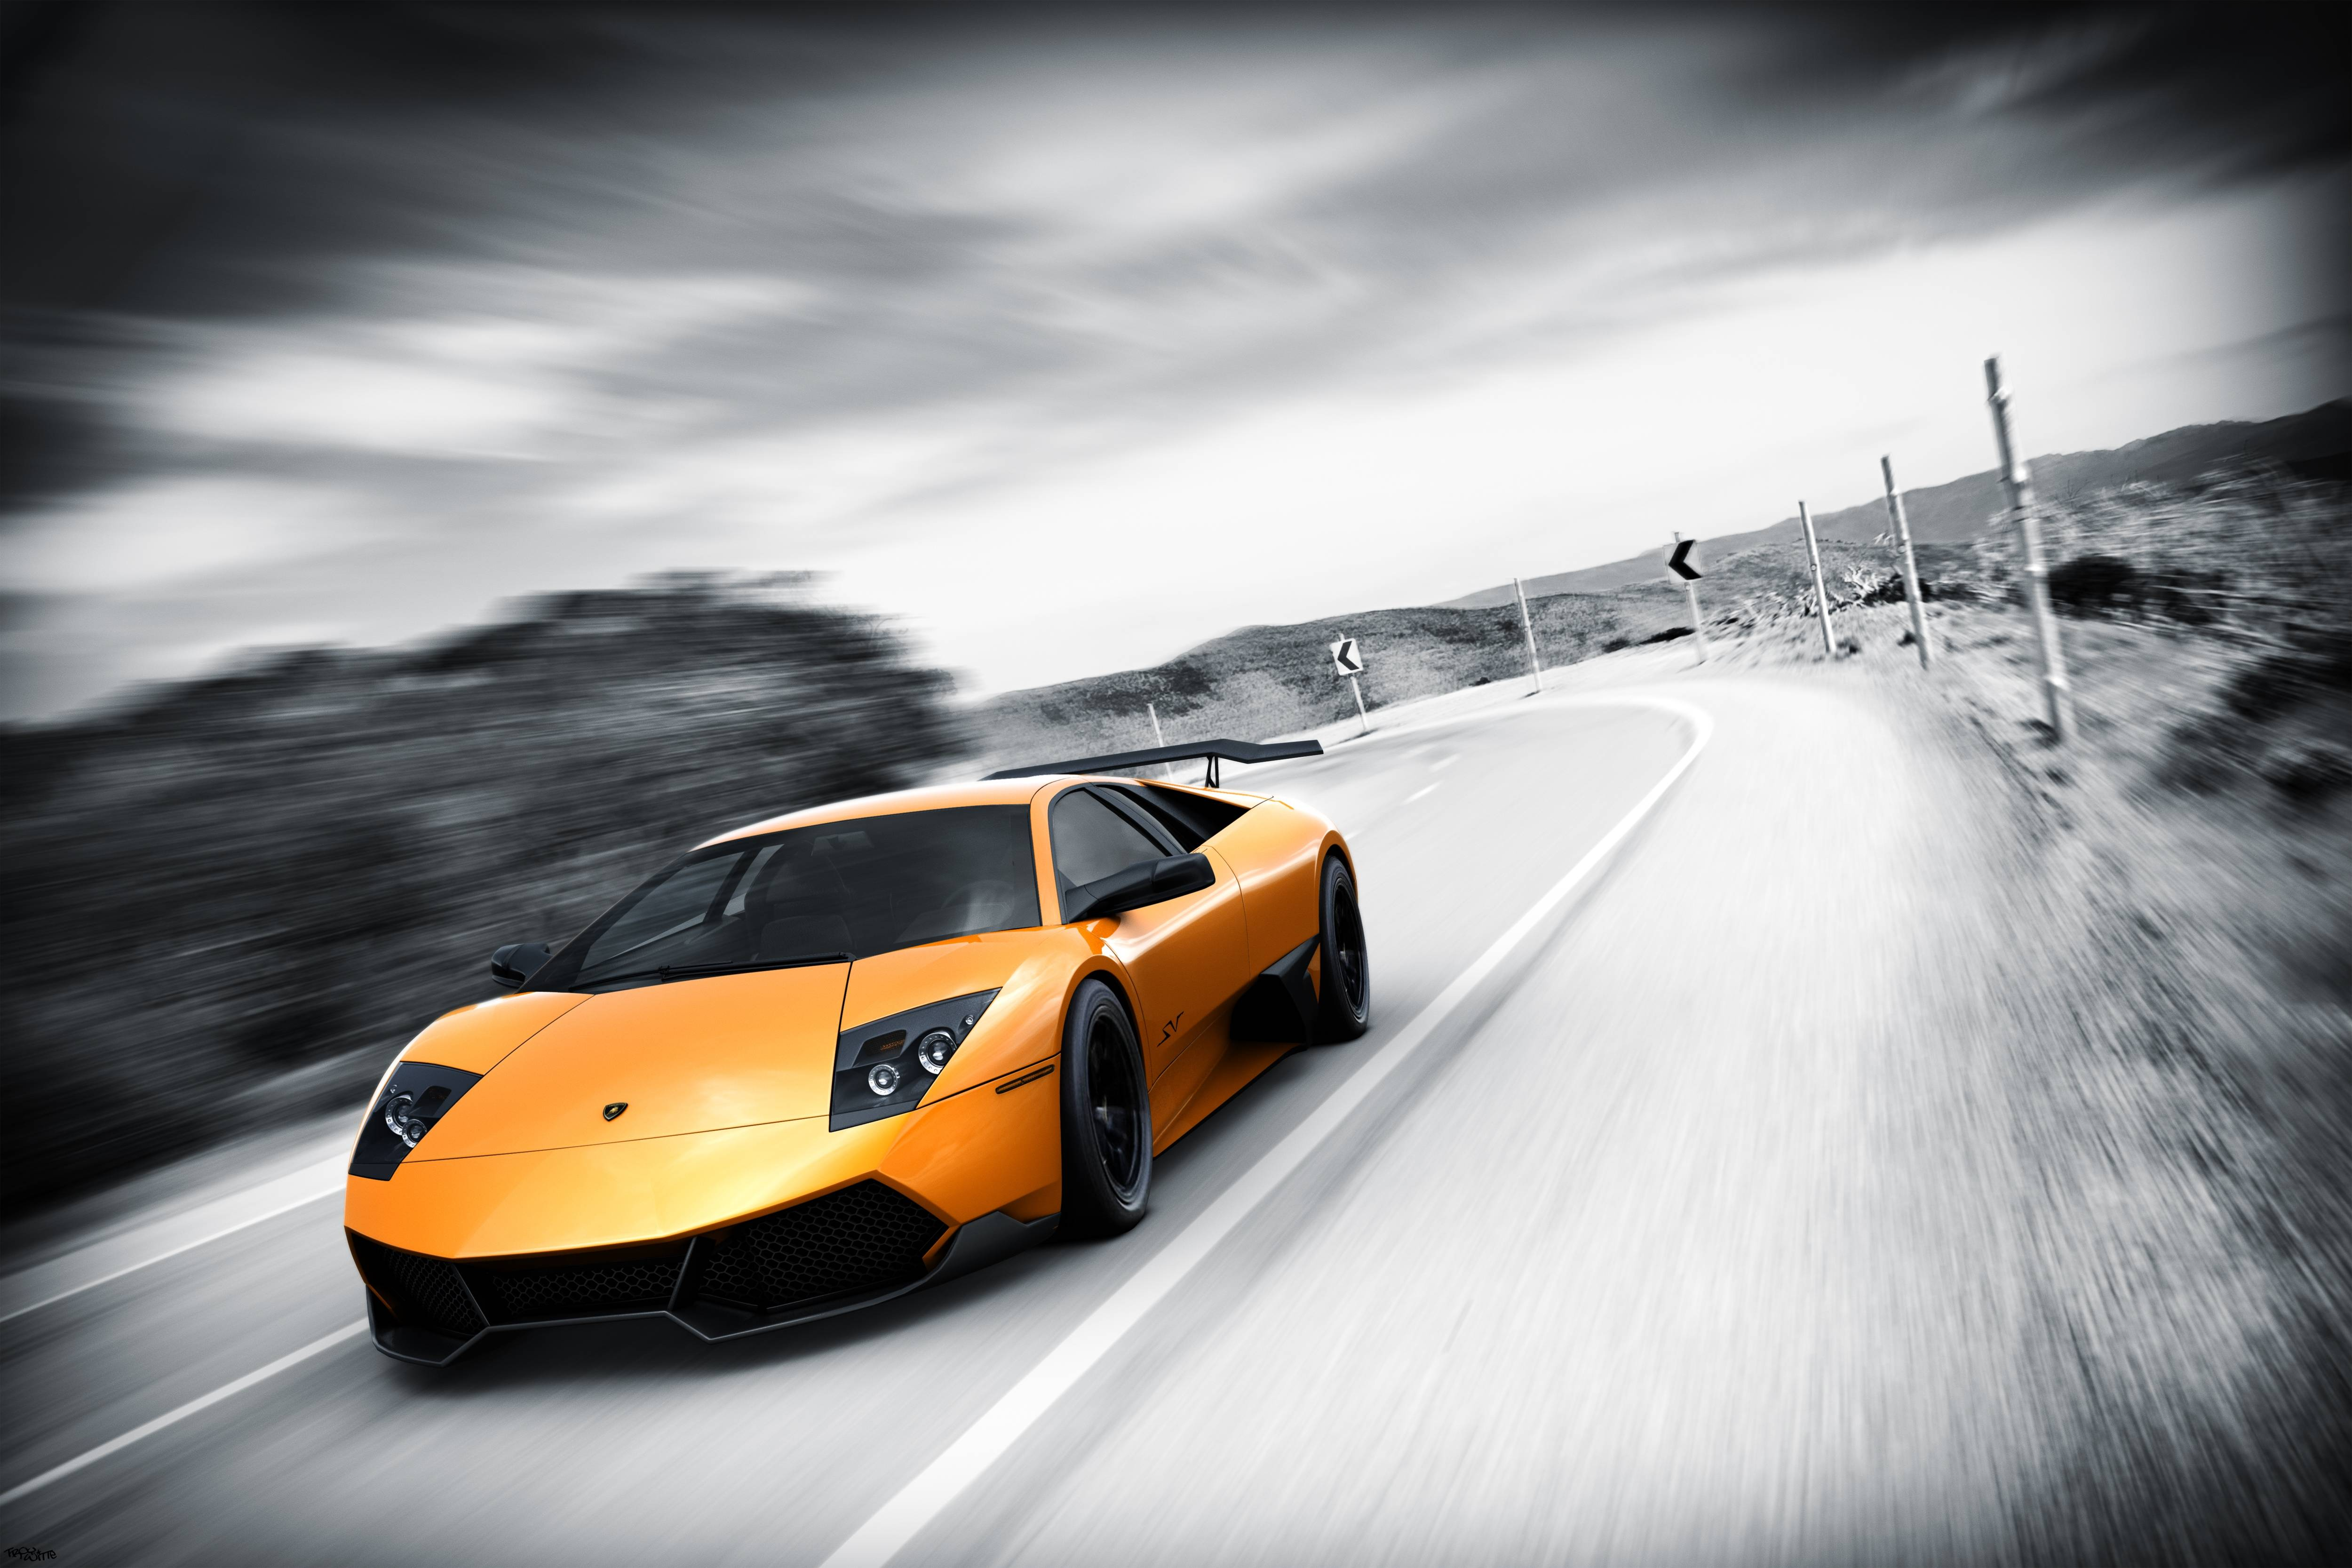 Best HD Wallpapers Cars